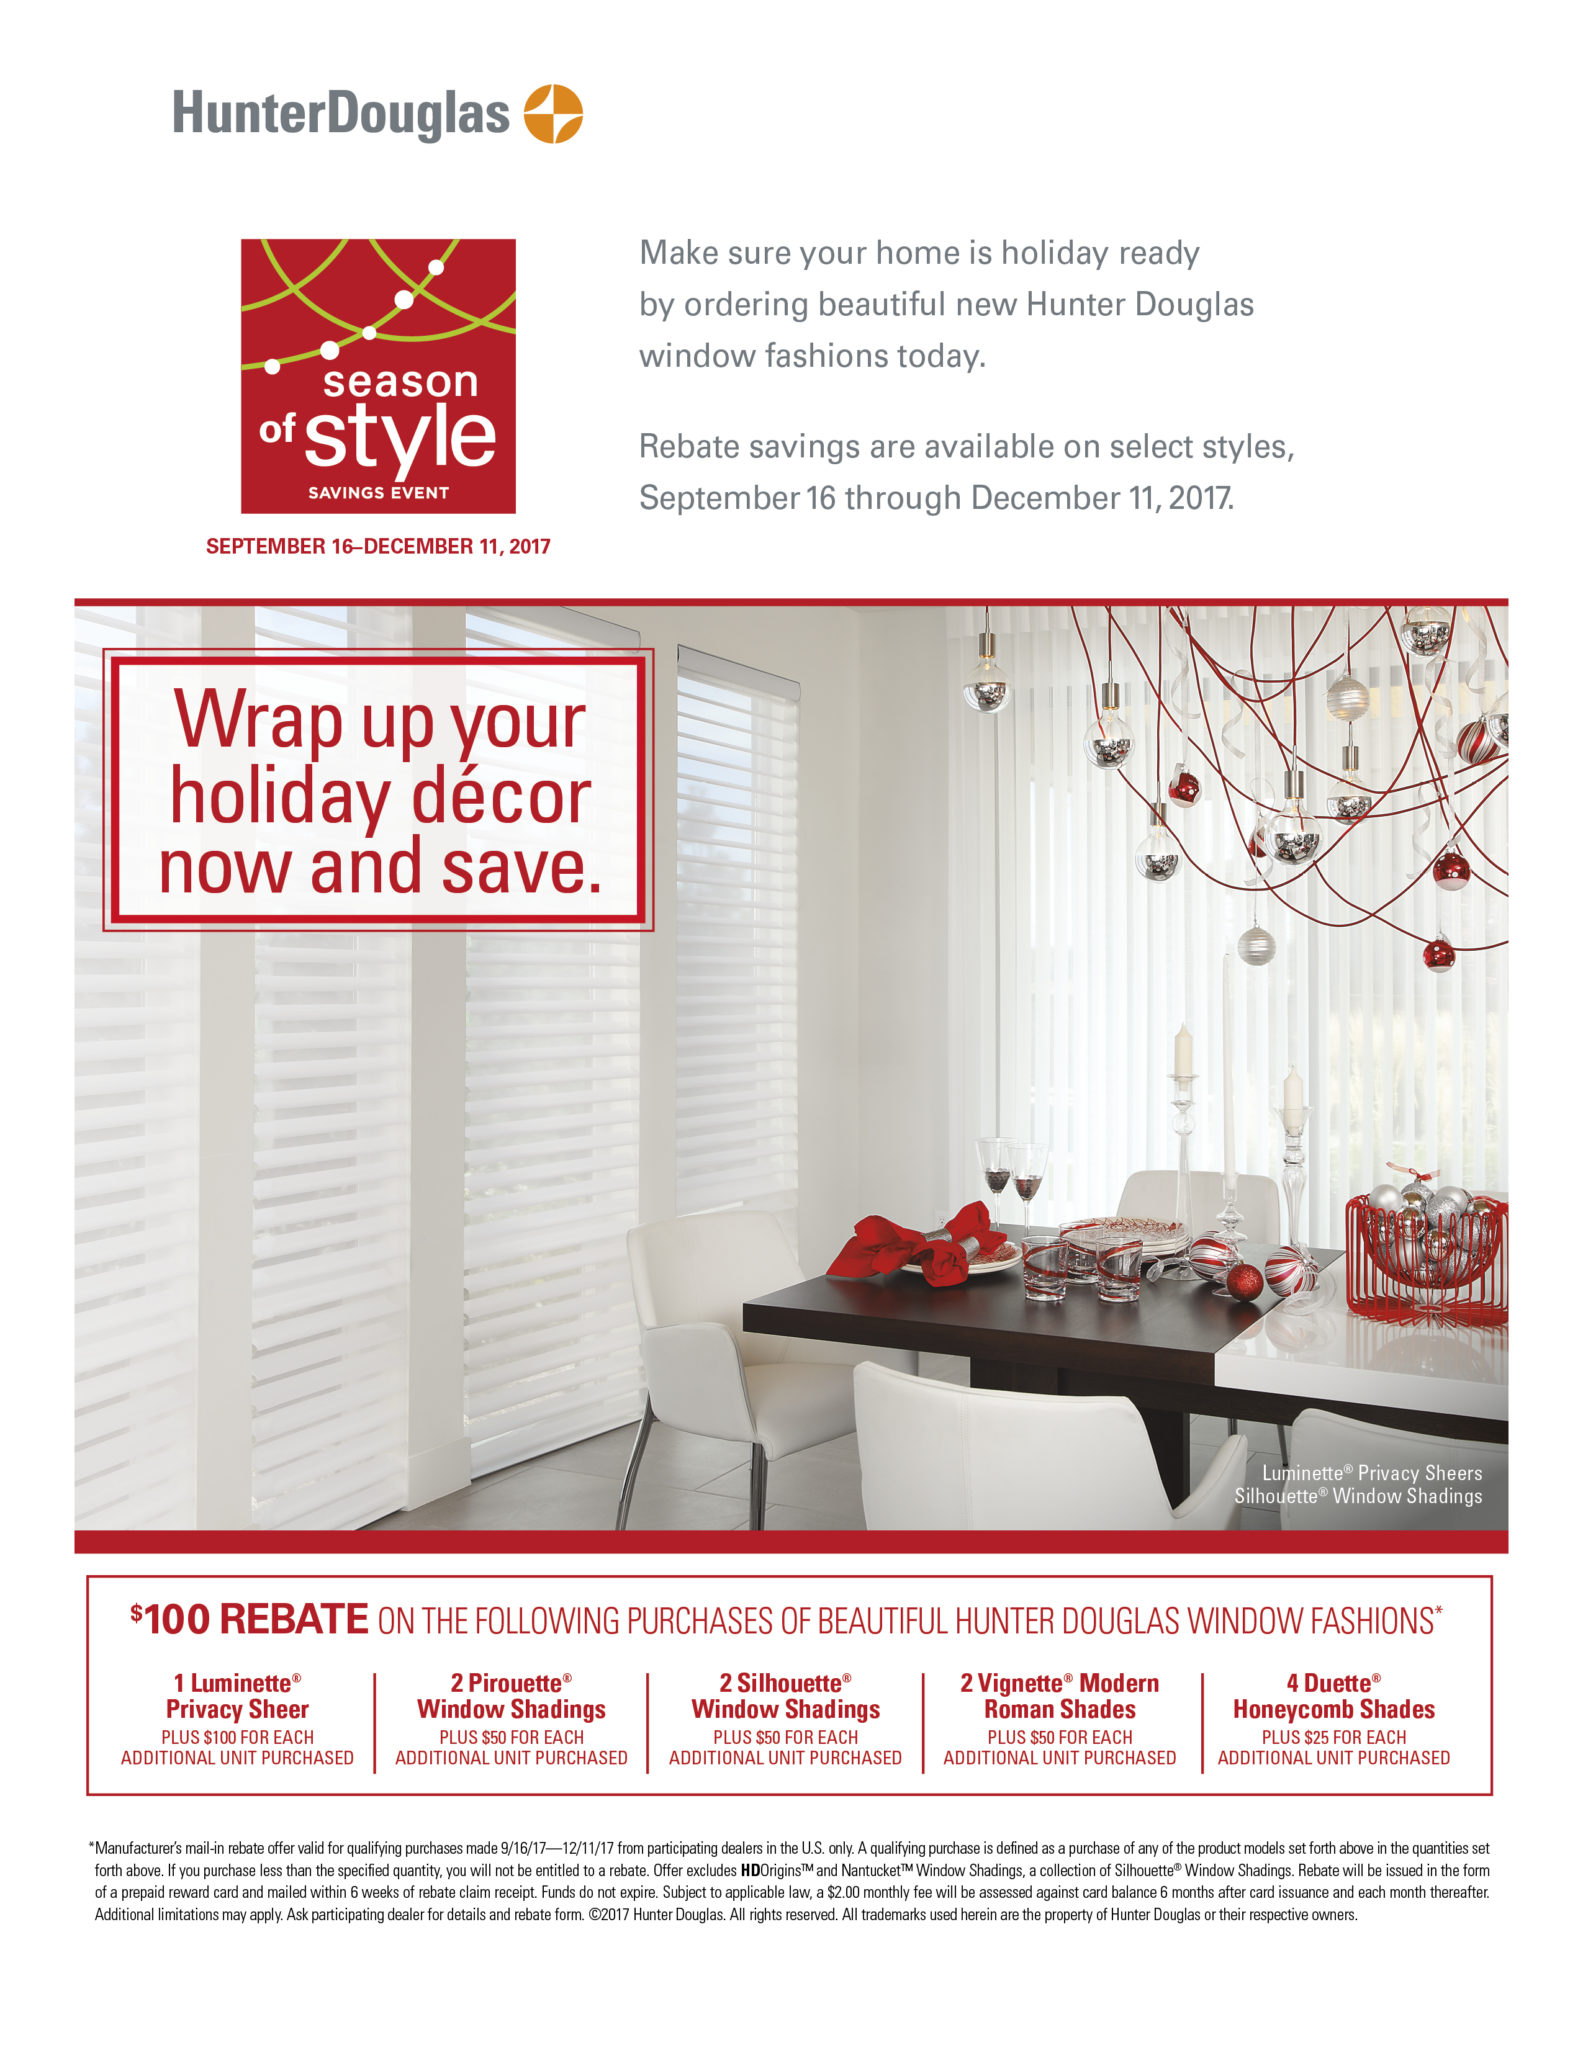 Hunter Douglas Season of Style Event